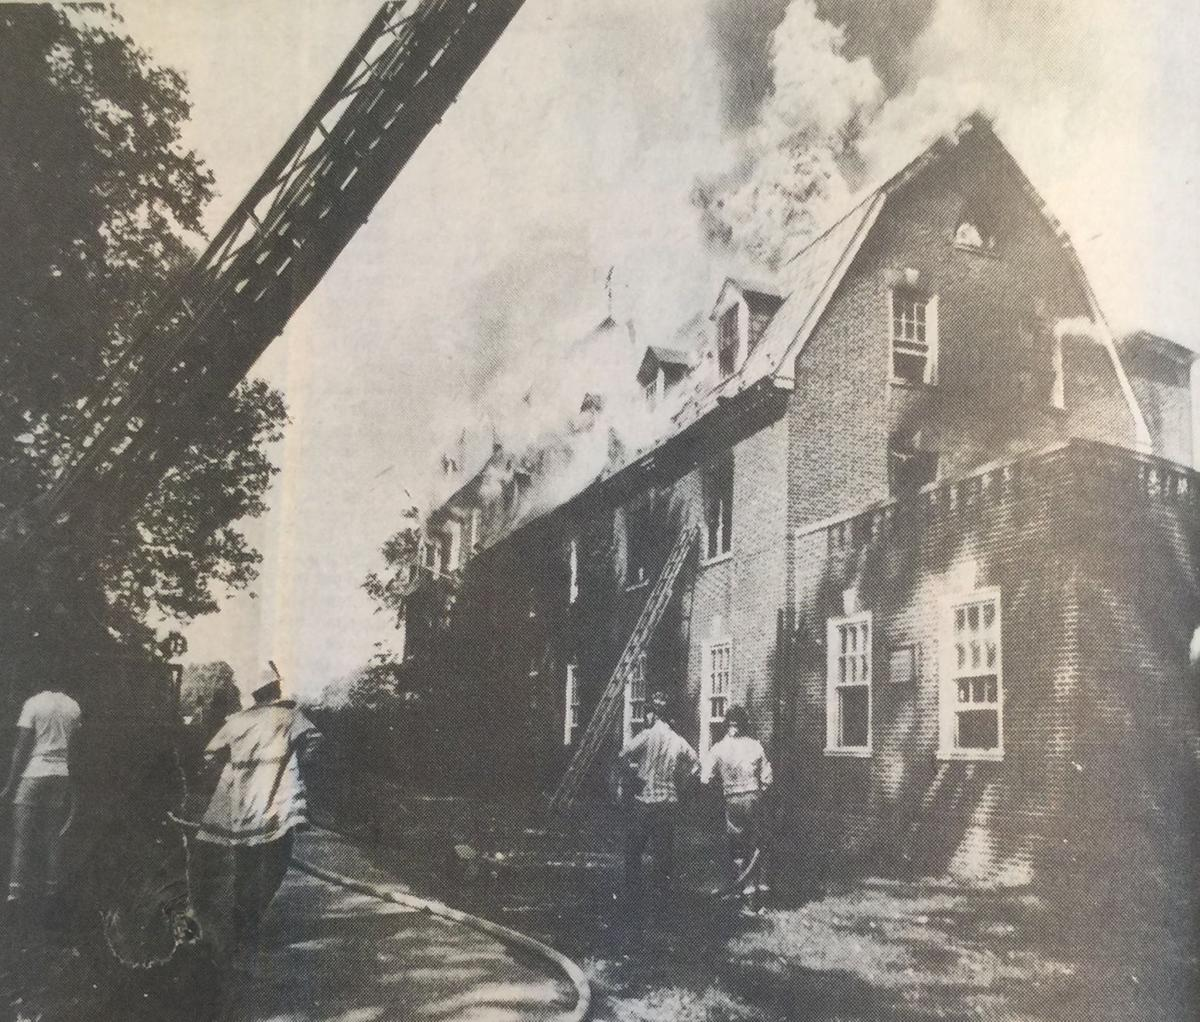 Out of the attic sigma nu fraternity house fire 1977 for Facts about house fires